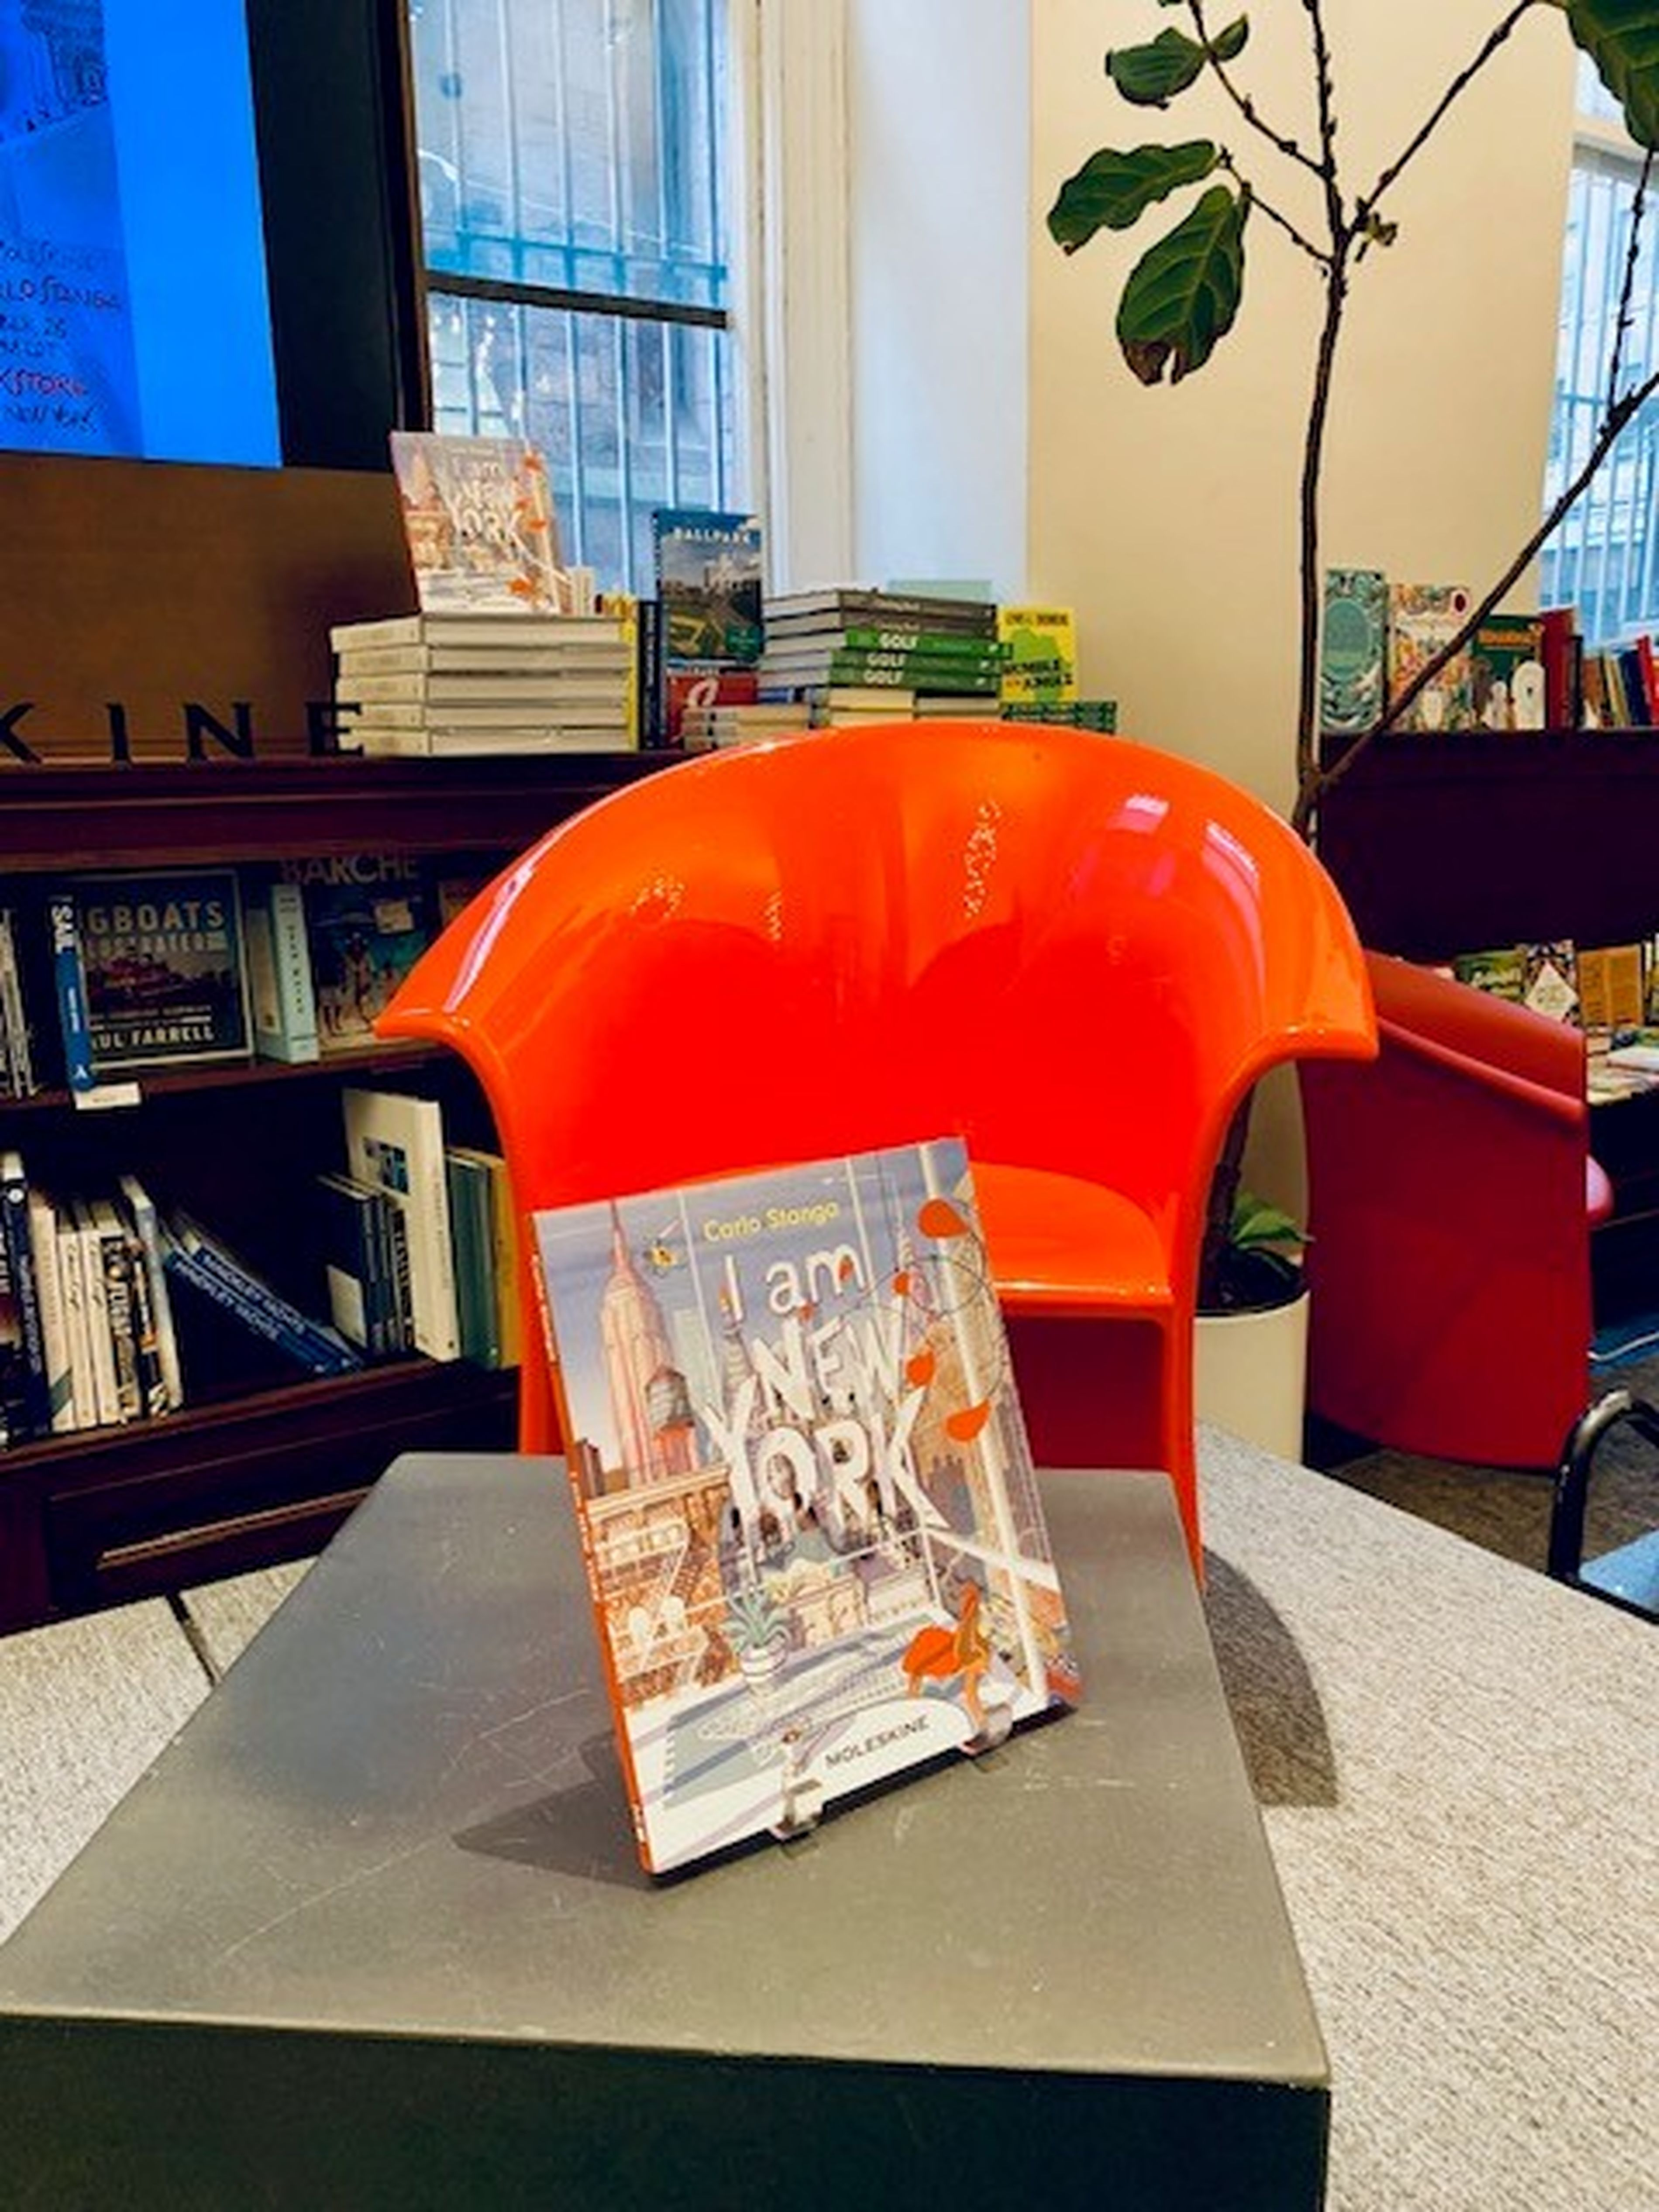 I AM NEW YORK AT RIZZOLI BOOKSTORE